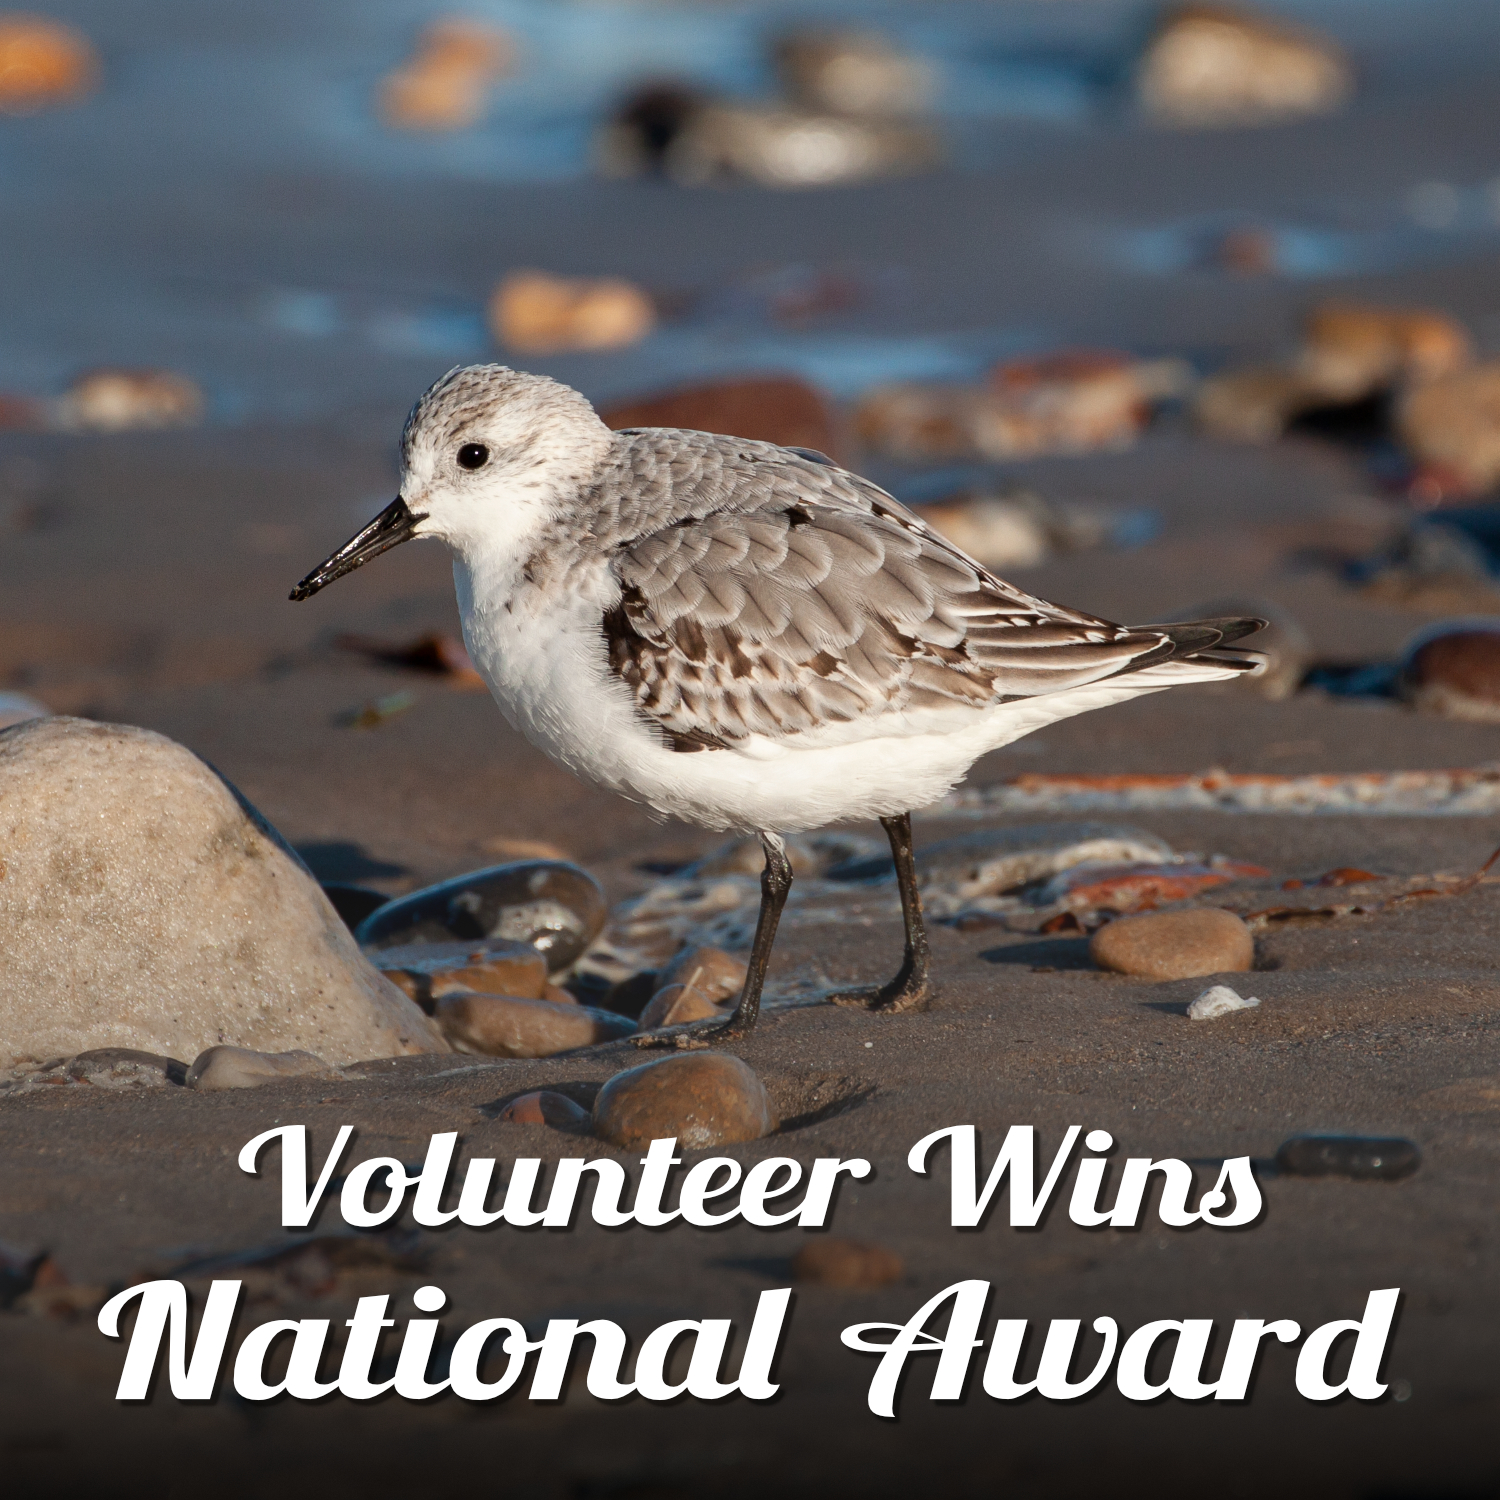 Photo of a sanderling, in winter white and grey plumage, on a sandy foreshore with wet pebbles and larger stones. Text reads 'Volunteer Wins National Award'.